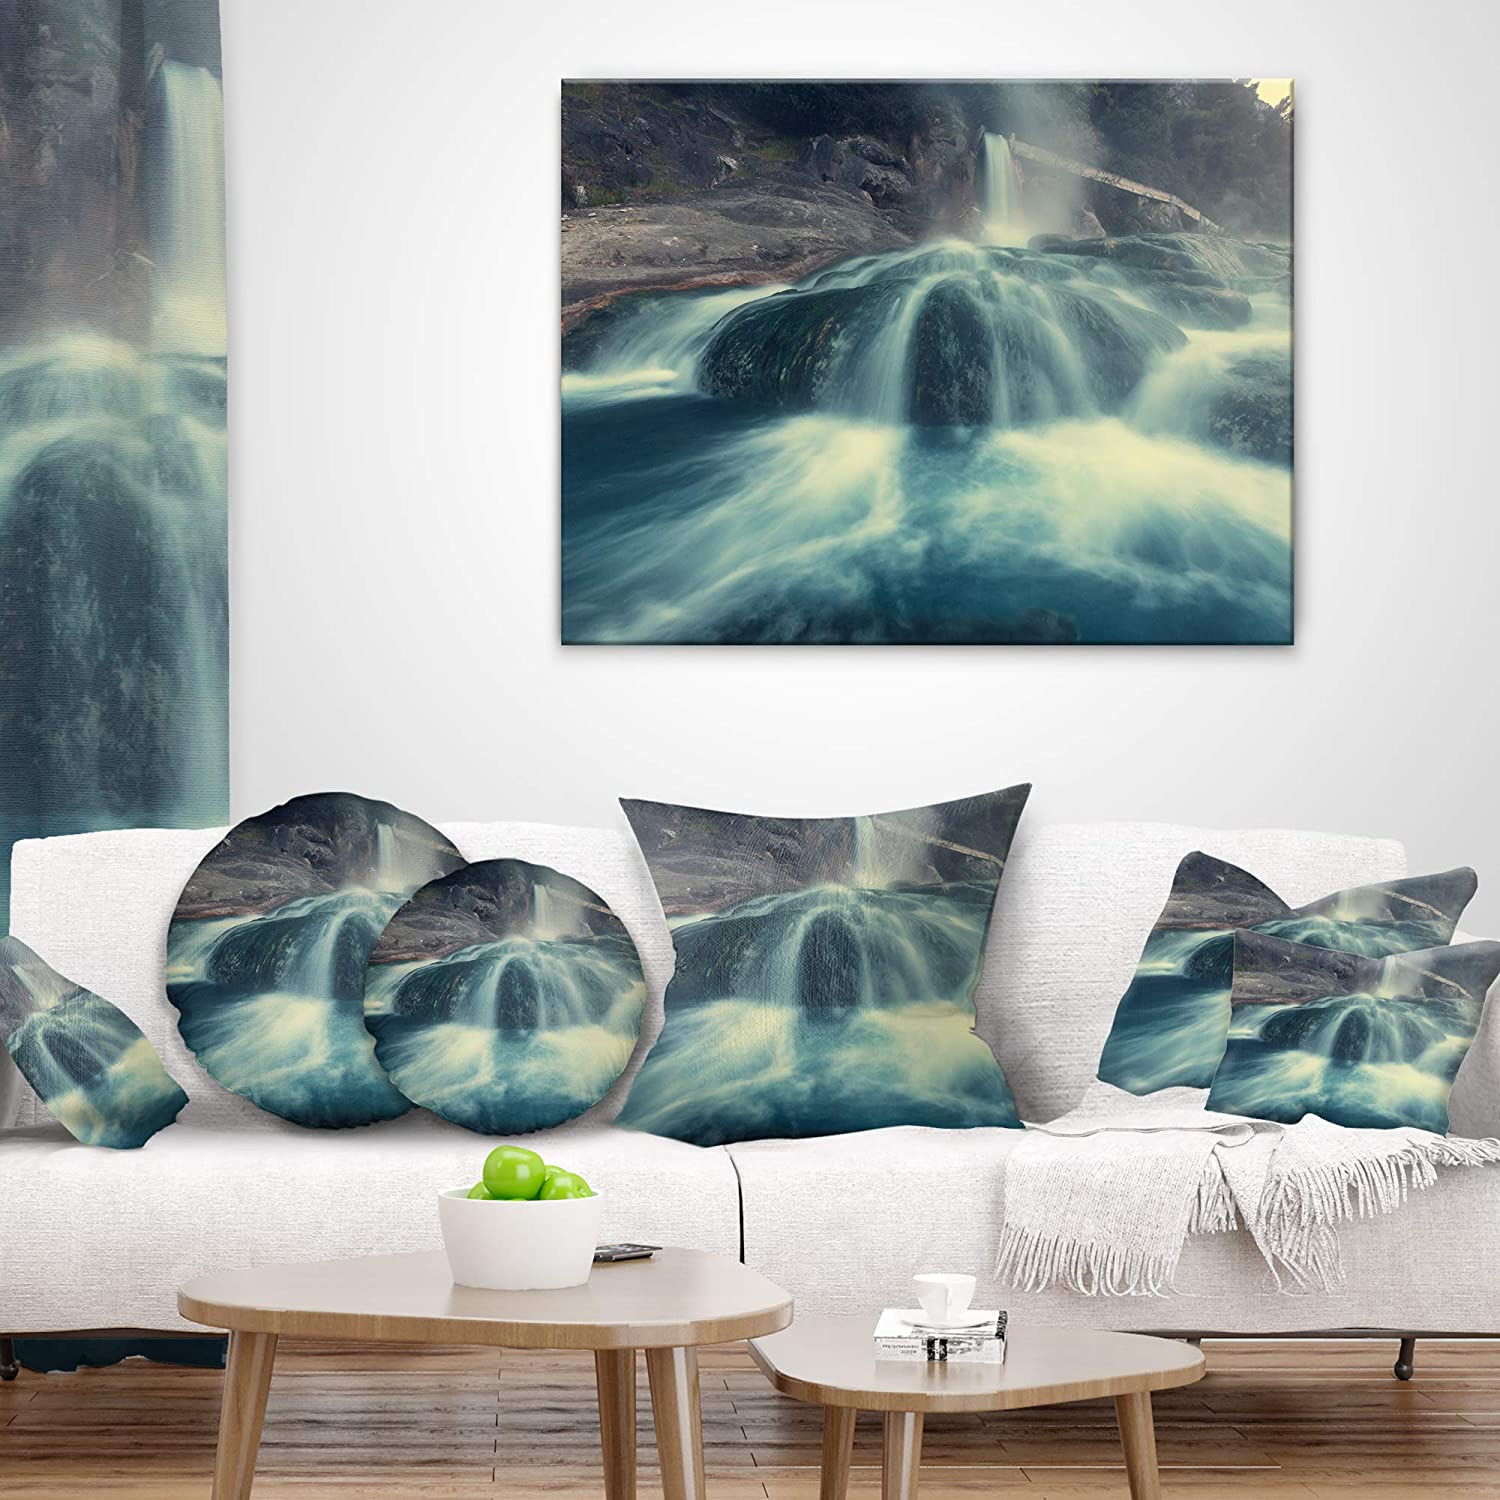 Insert Printed On Both Side Designart CU12233-26-26 Hot Spring thermopiles Greece Seascape Cushion Cover for Living Room Sofa Throw Pillow 26 in x 26 in in